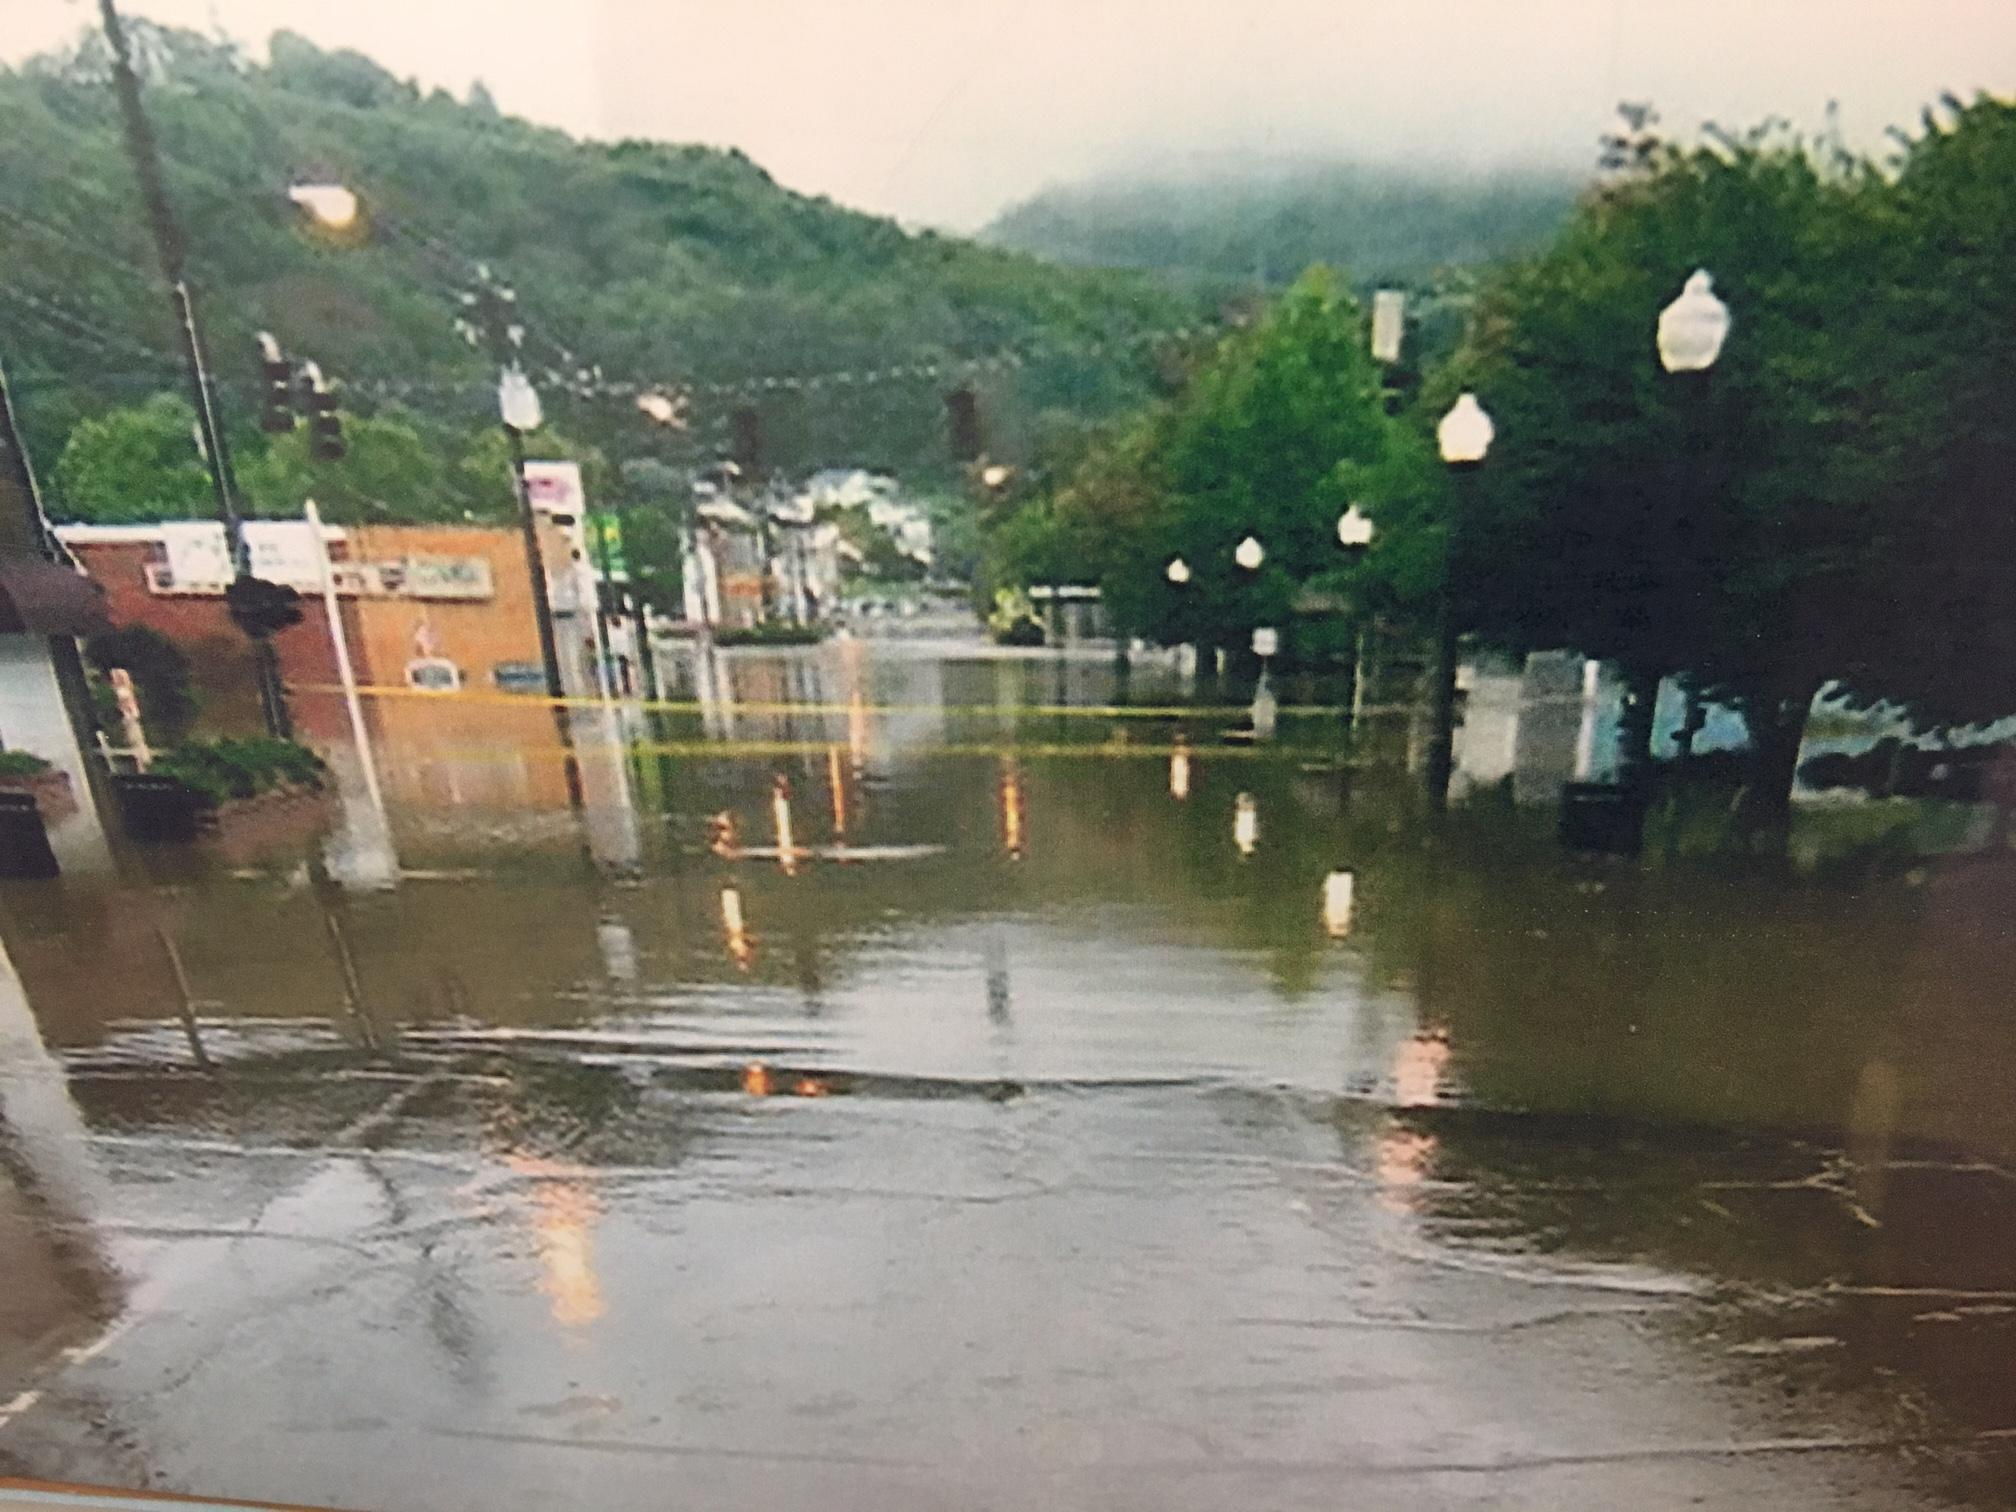 If Hurricane Irma brings a lot of rain to the mountains of Western North Carolina, two Haywood County towns are better prepared than they were in 2004. That's when the remnants of back to back hurricanes flooded Canton and Clyde. (Photo credit: WLOS staff)